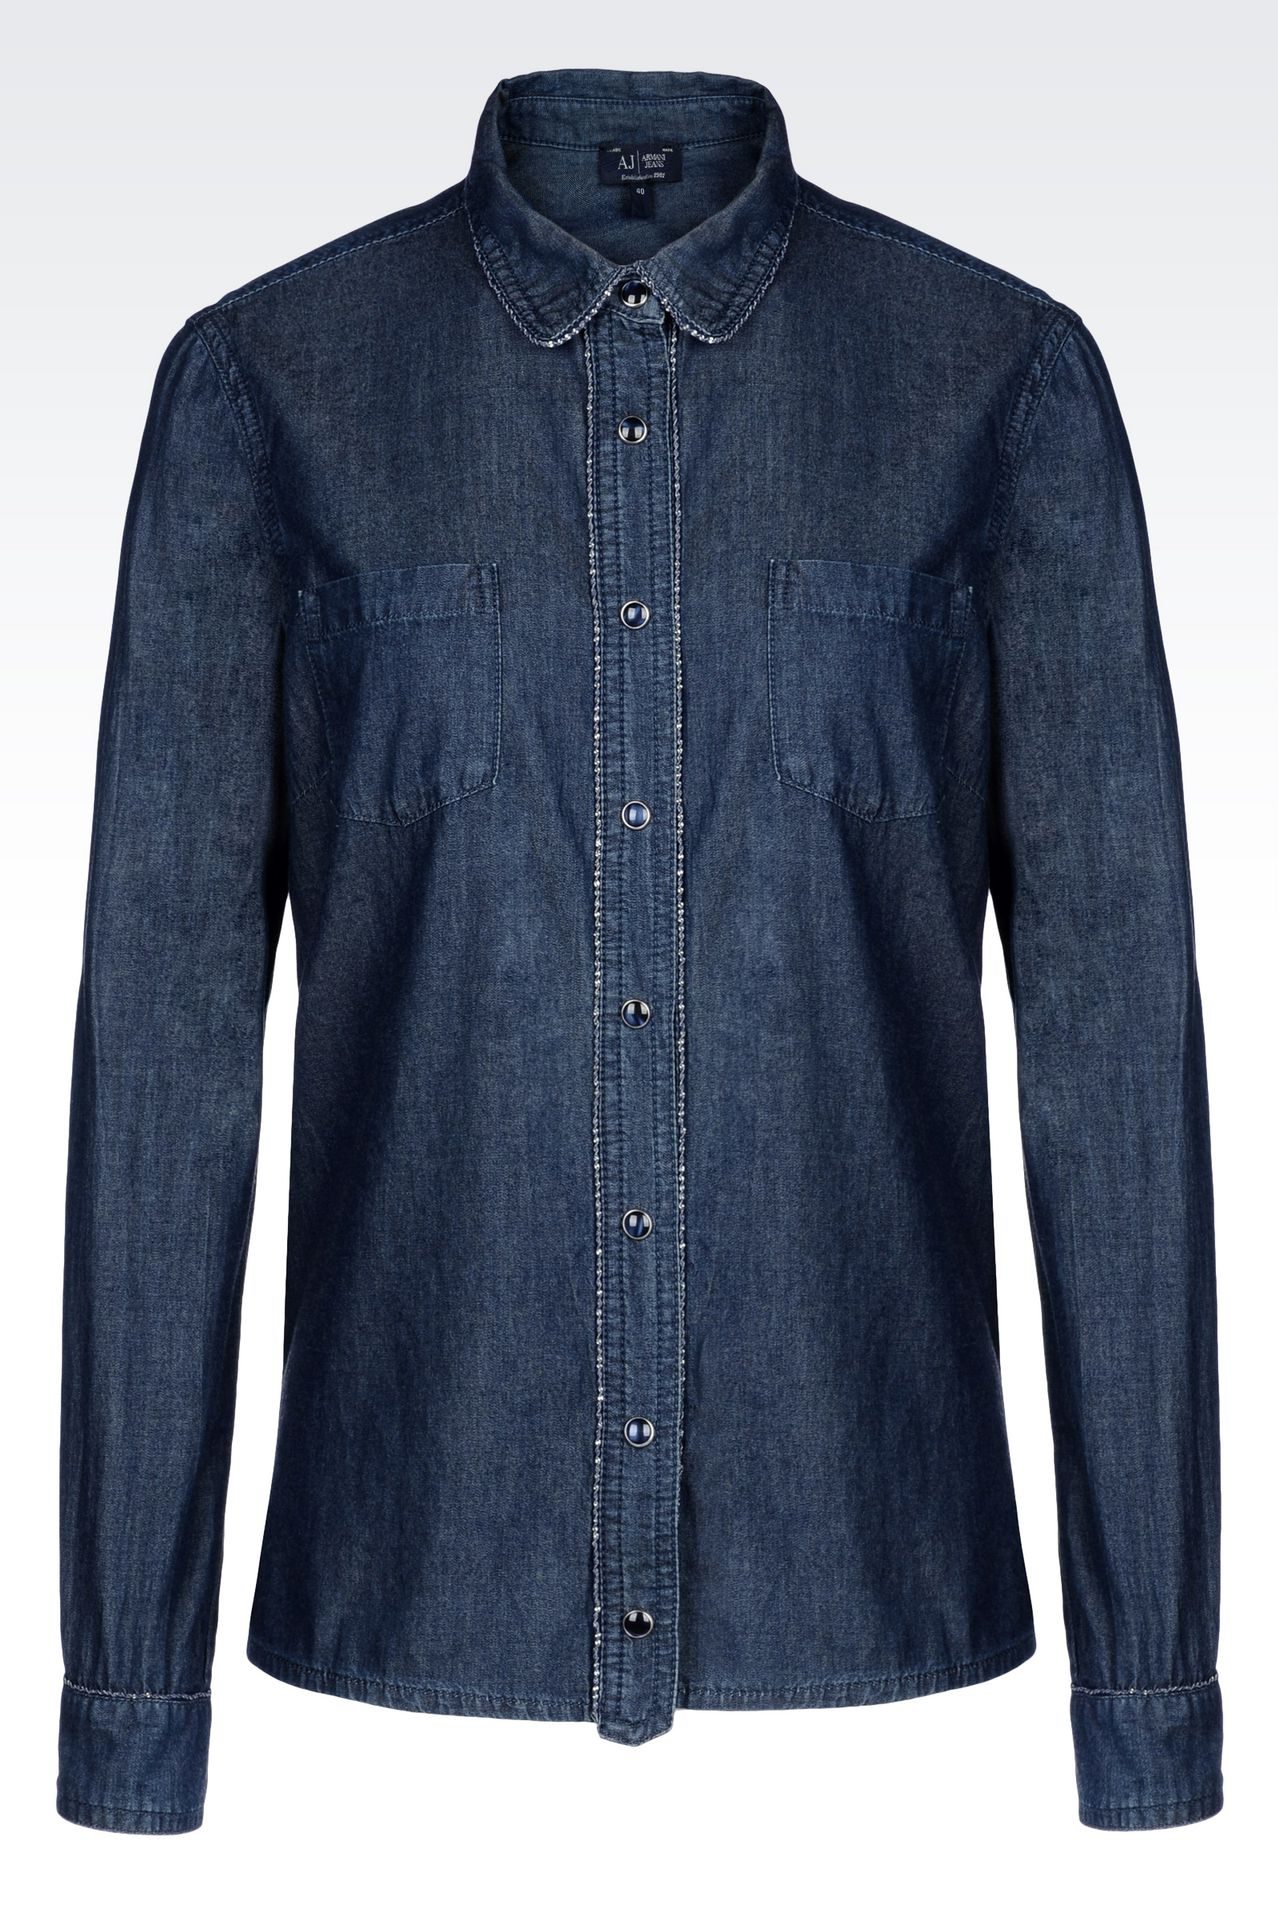 SHIRT IN VINTAGE COTTON CHAMBRAY: Long sleeve shirts Women by Armani - 0